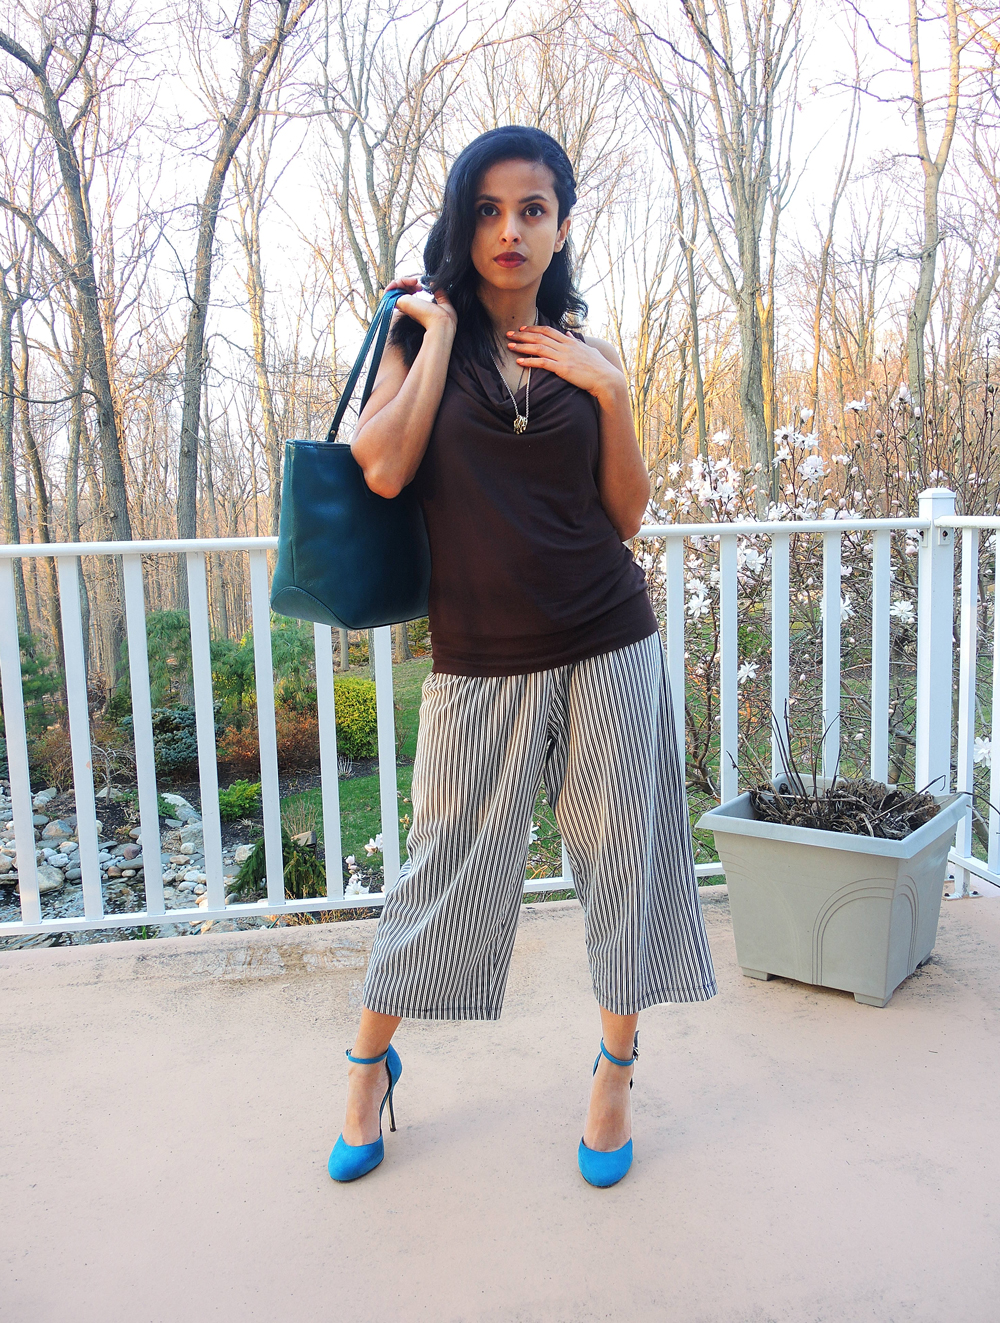 michael kors top, au revoir les filles necklace, nine west bag, culotte pants